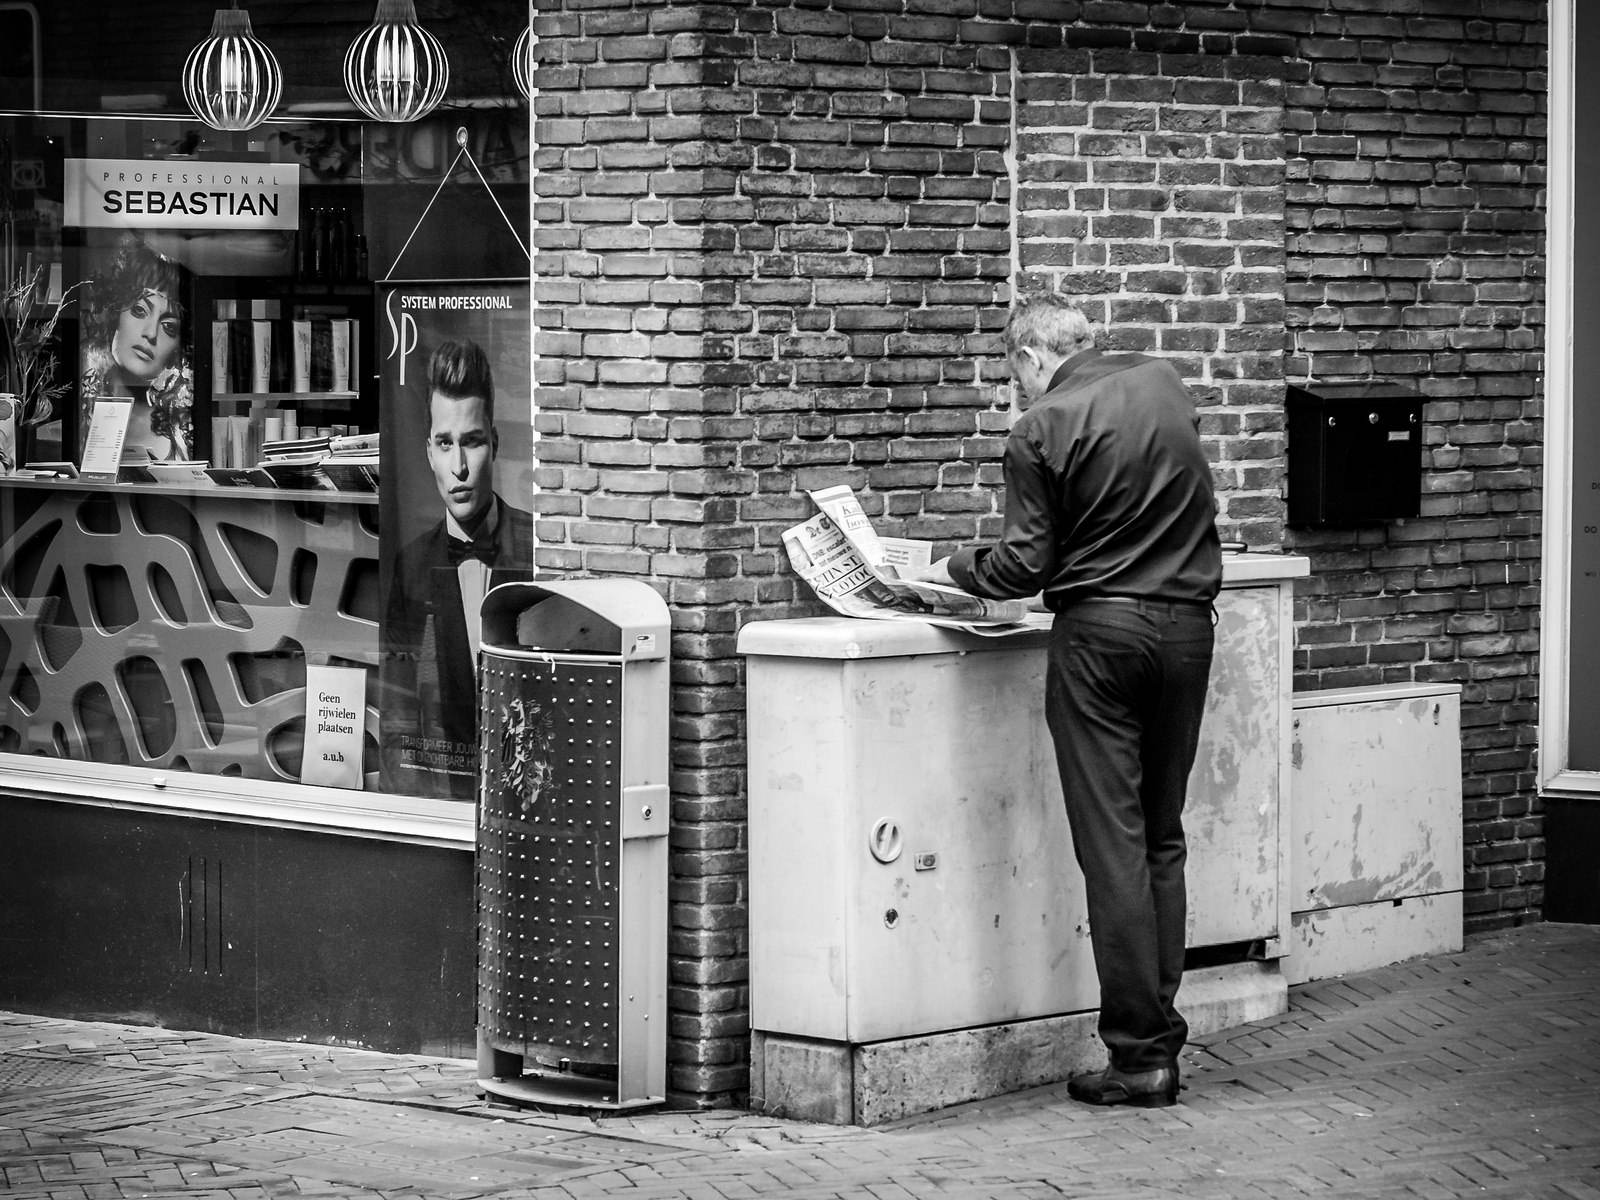 street photo14 Street Photos by Sjoerd Lammers